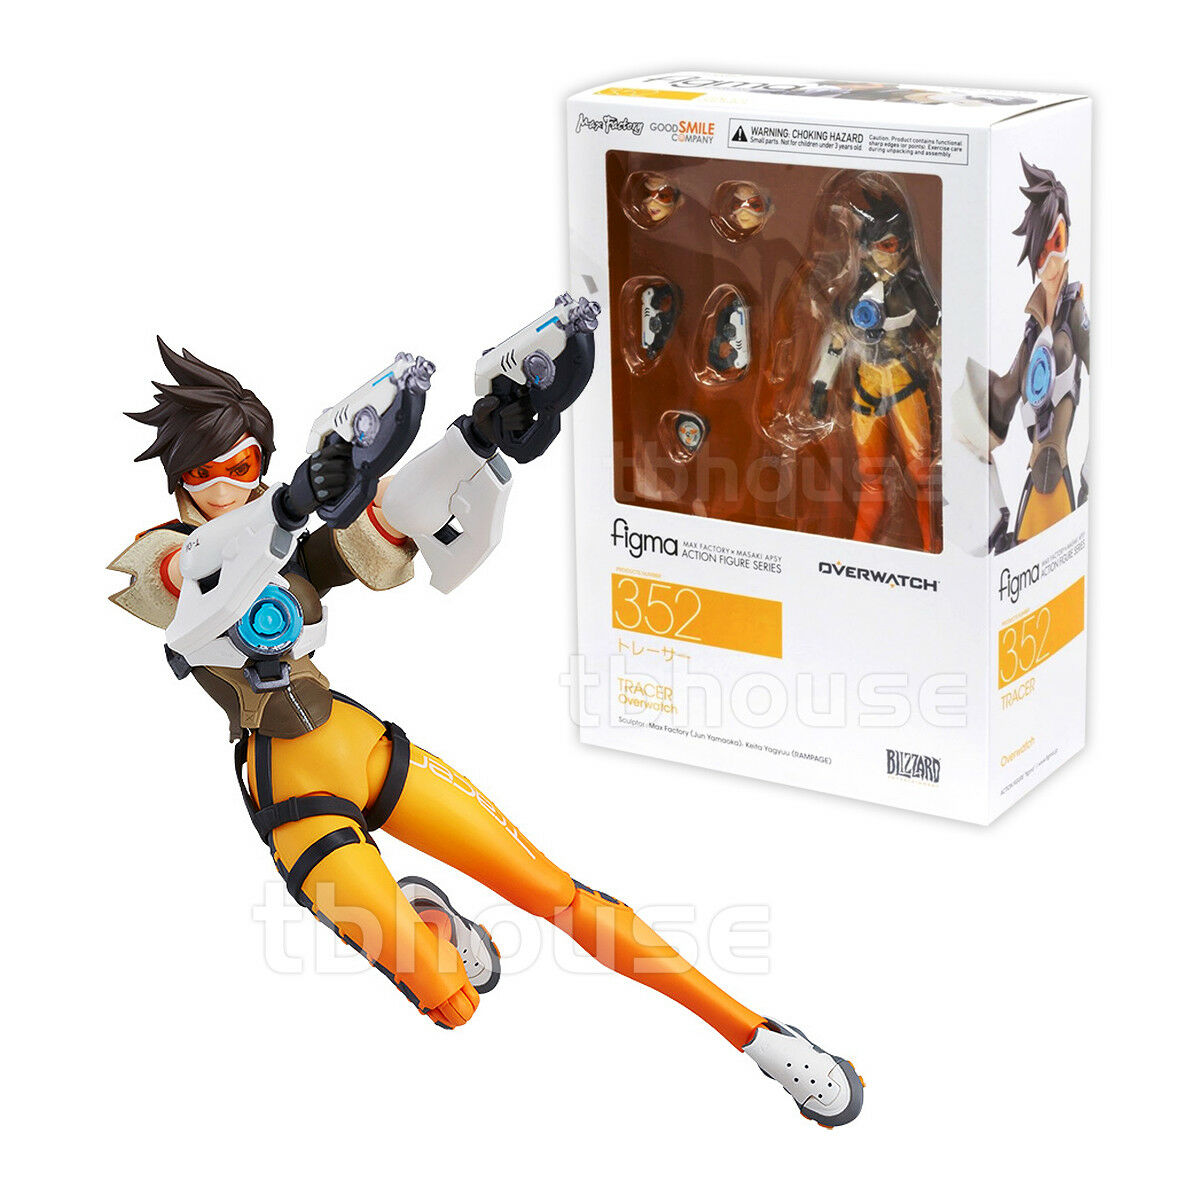 TRACER action figure OVERWATCH blizzard FIGMA company GOOD SMILE lena oxton 352